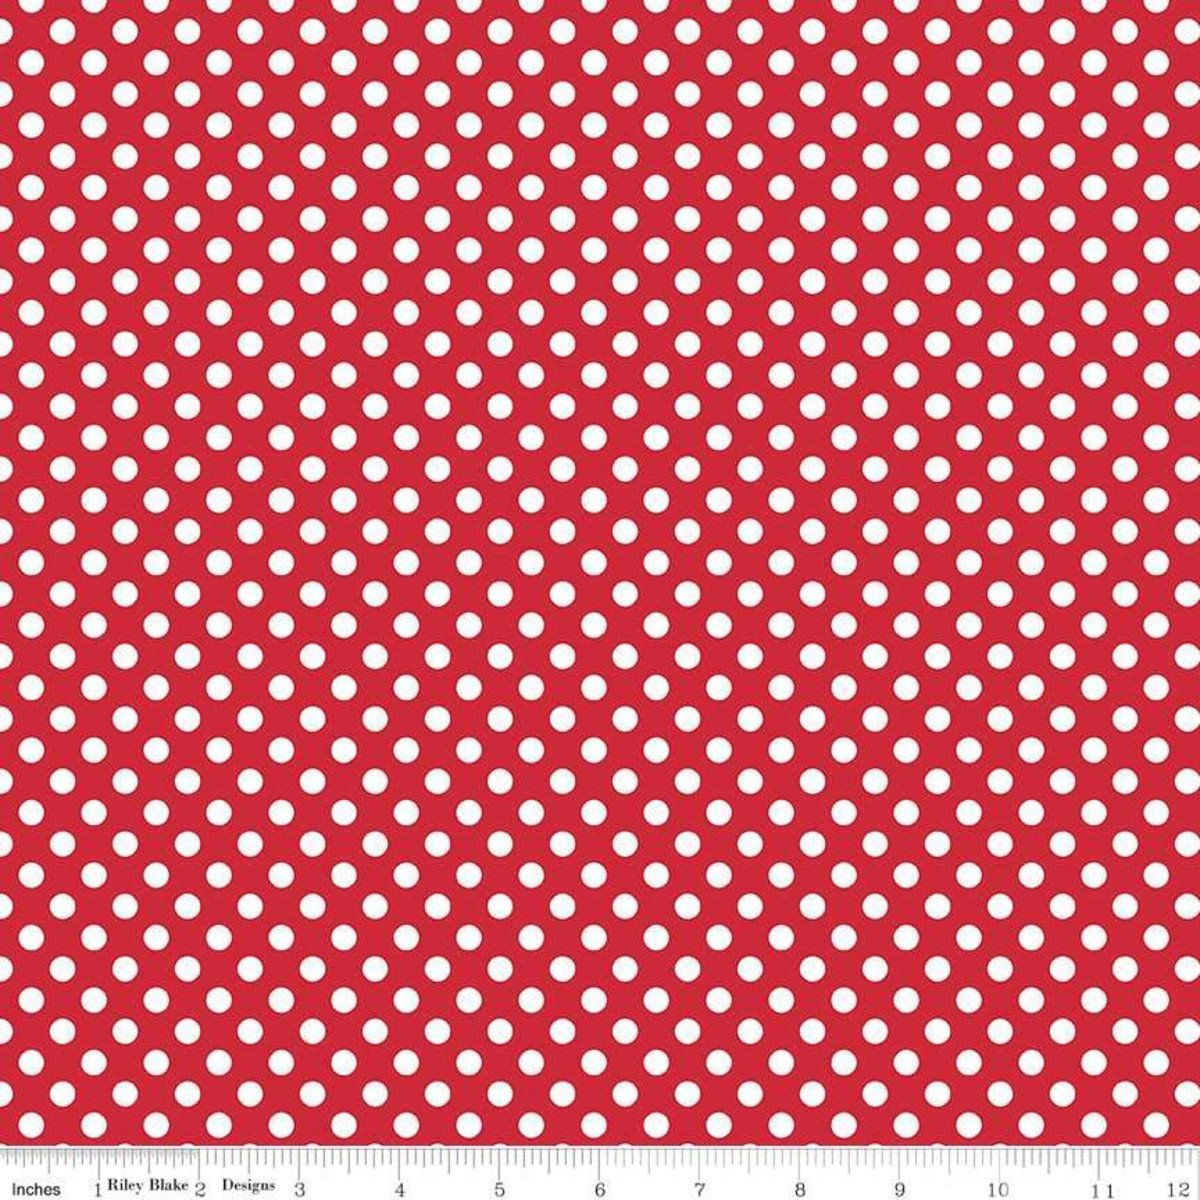 Red and White Small dots